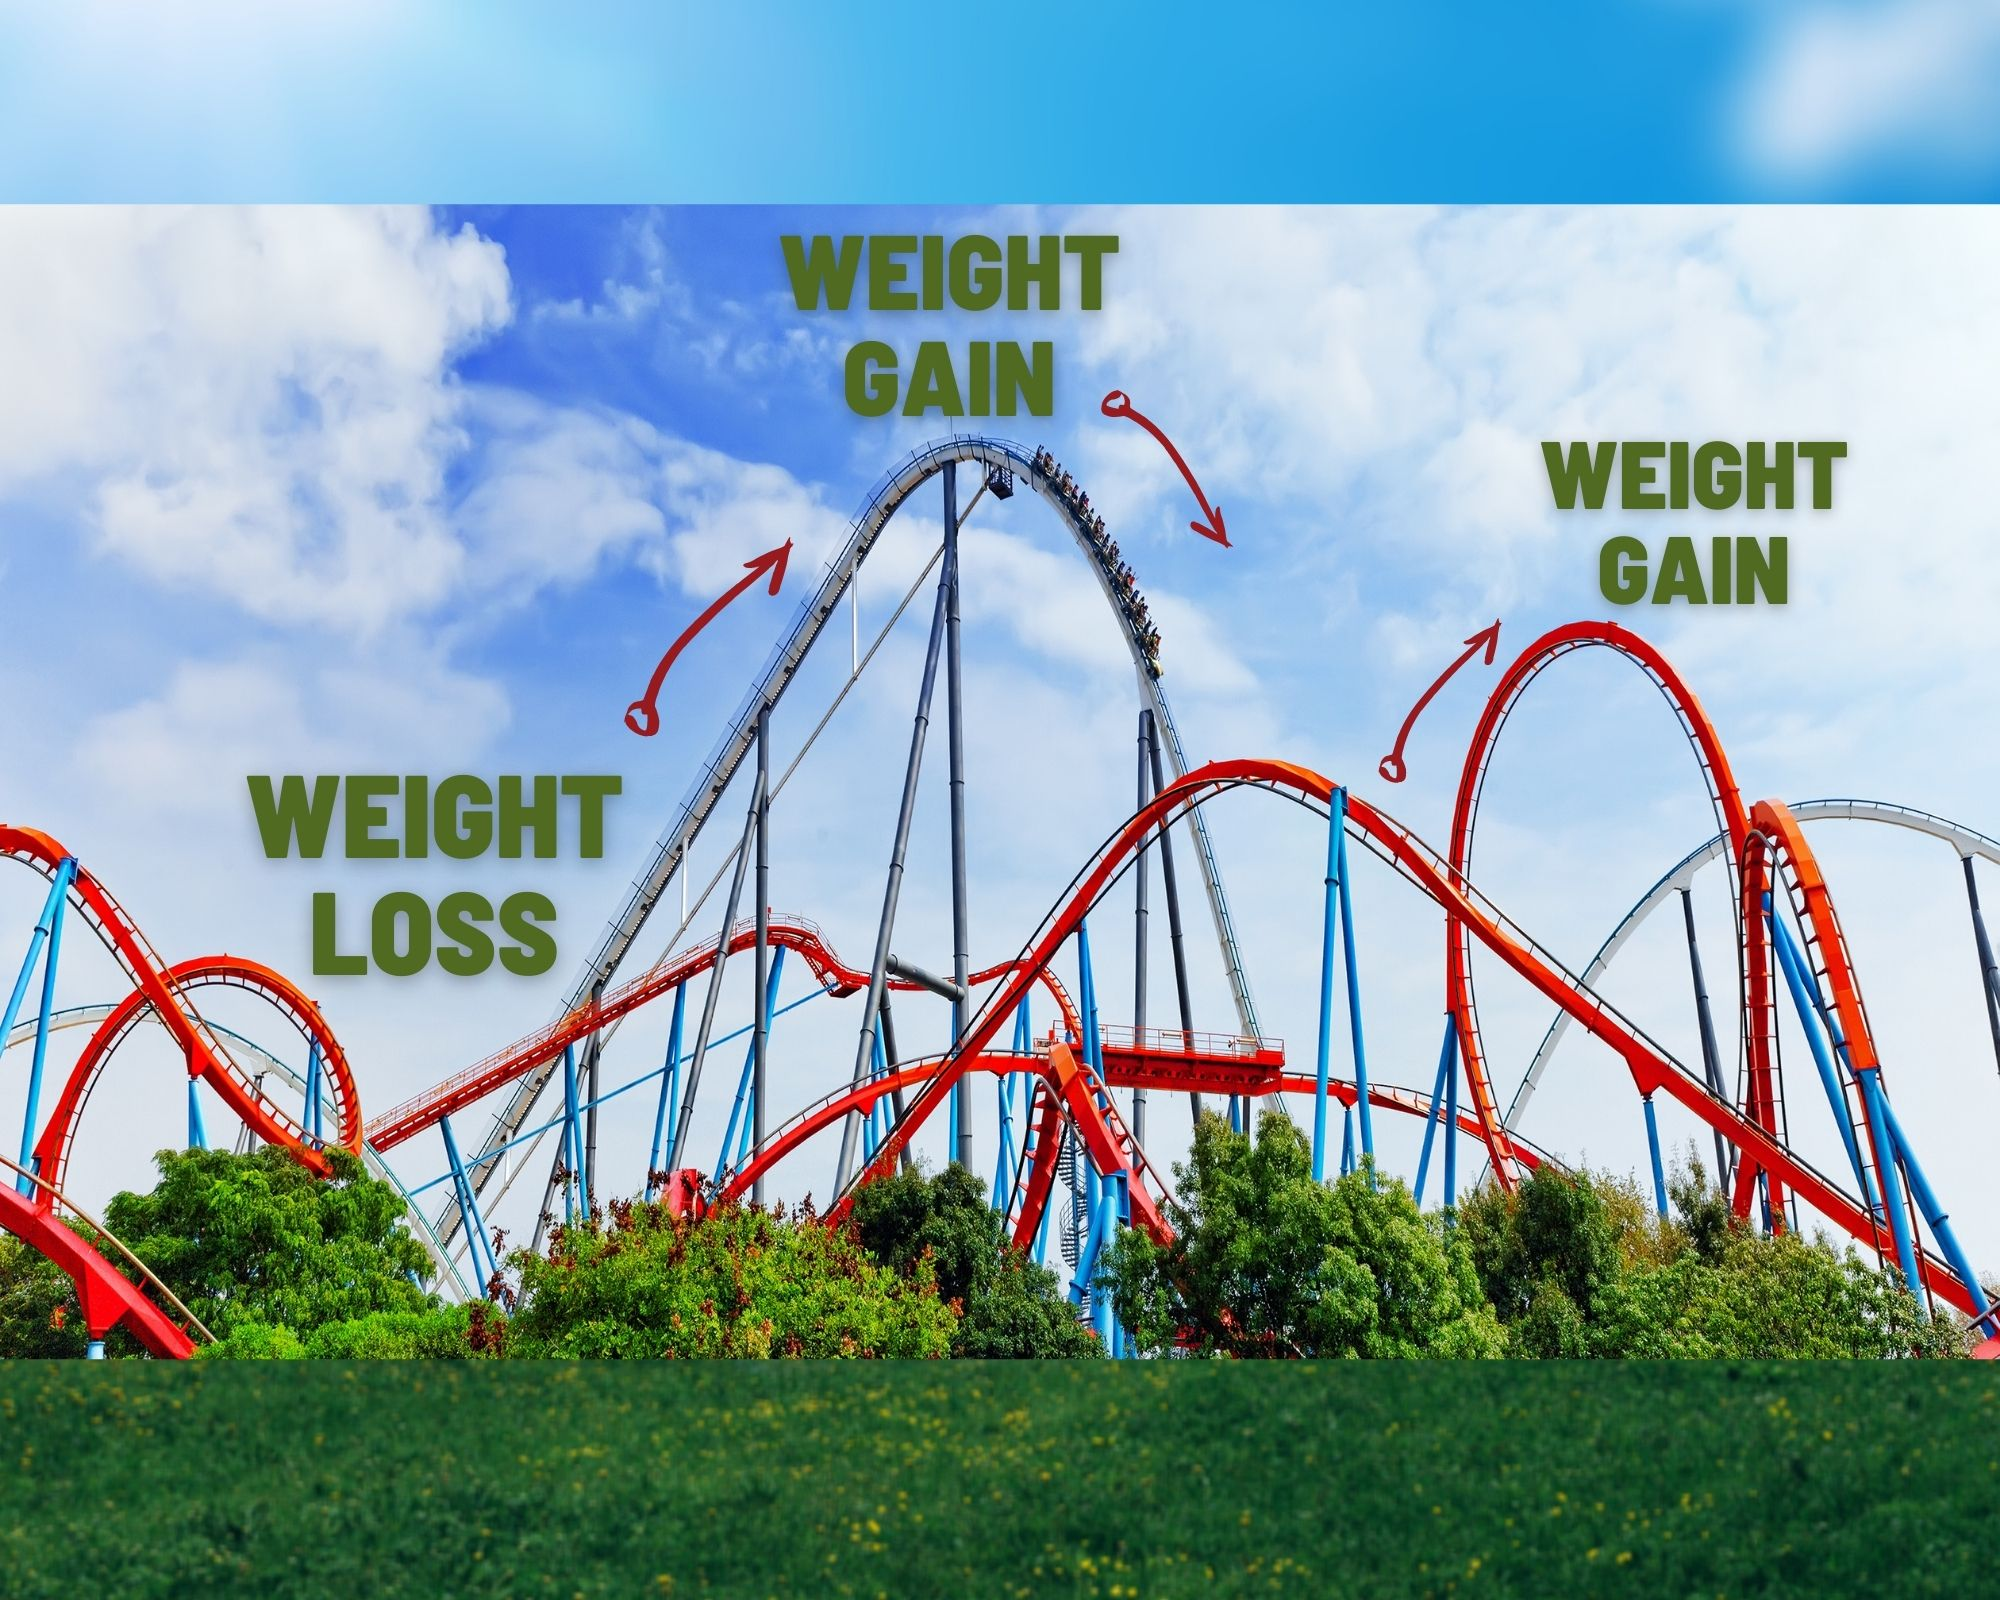 A roller coaster - implys the importance of balance